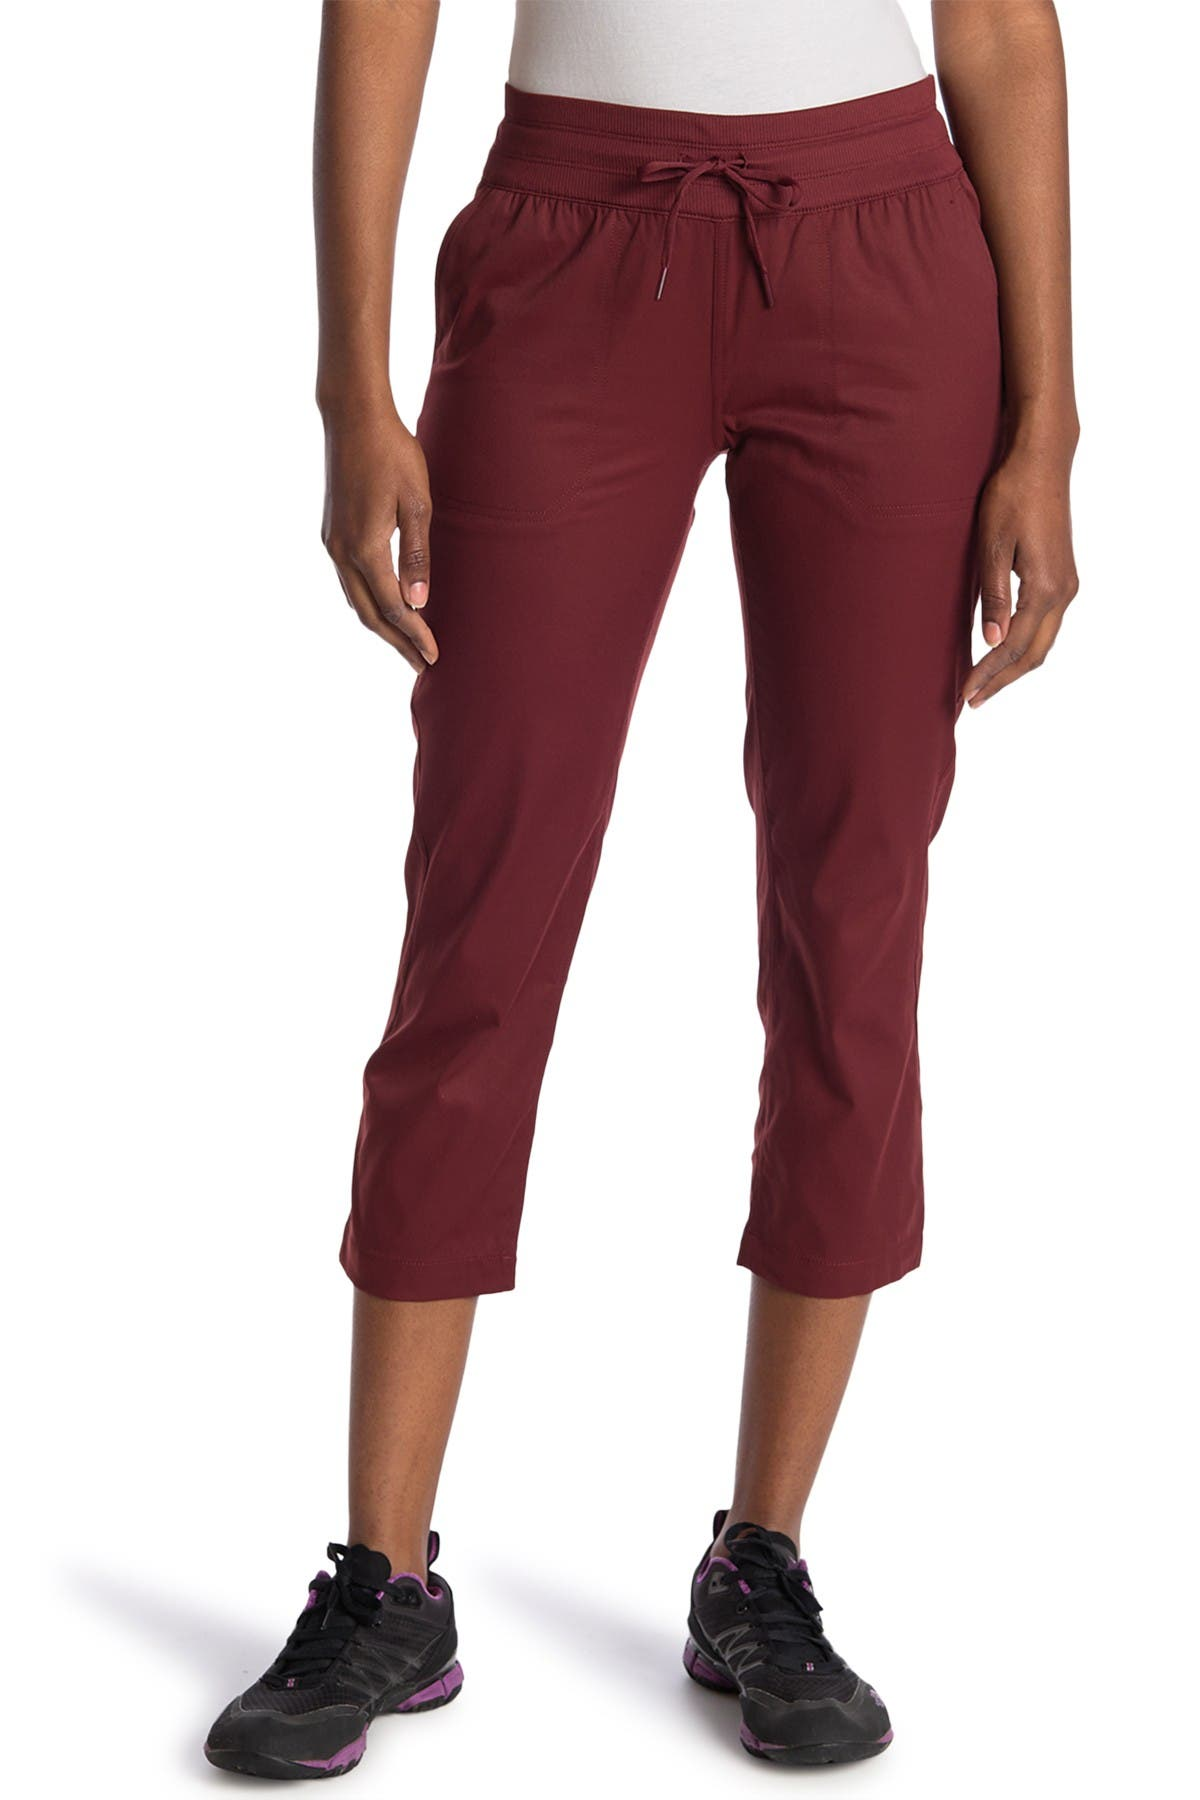 Image of The North Face Aphrodite Motion Capri Hiking Pants